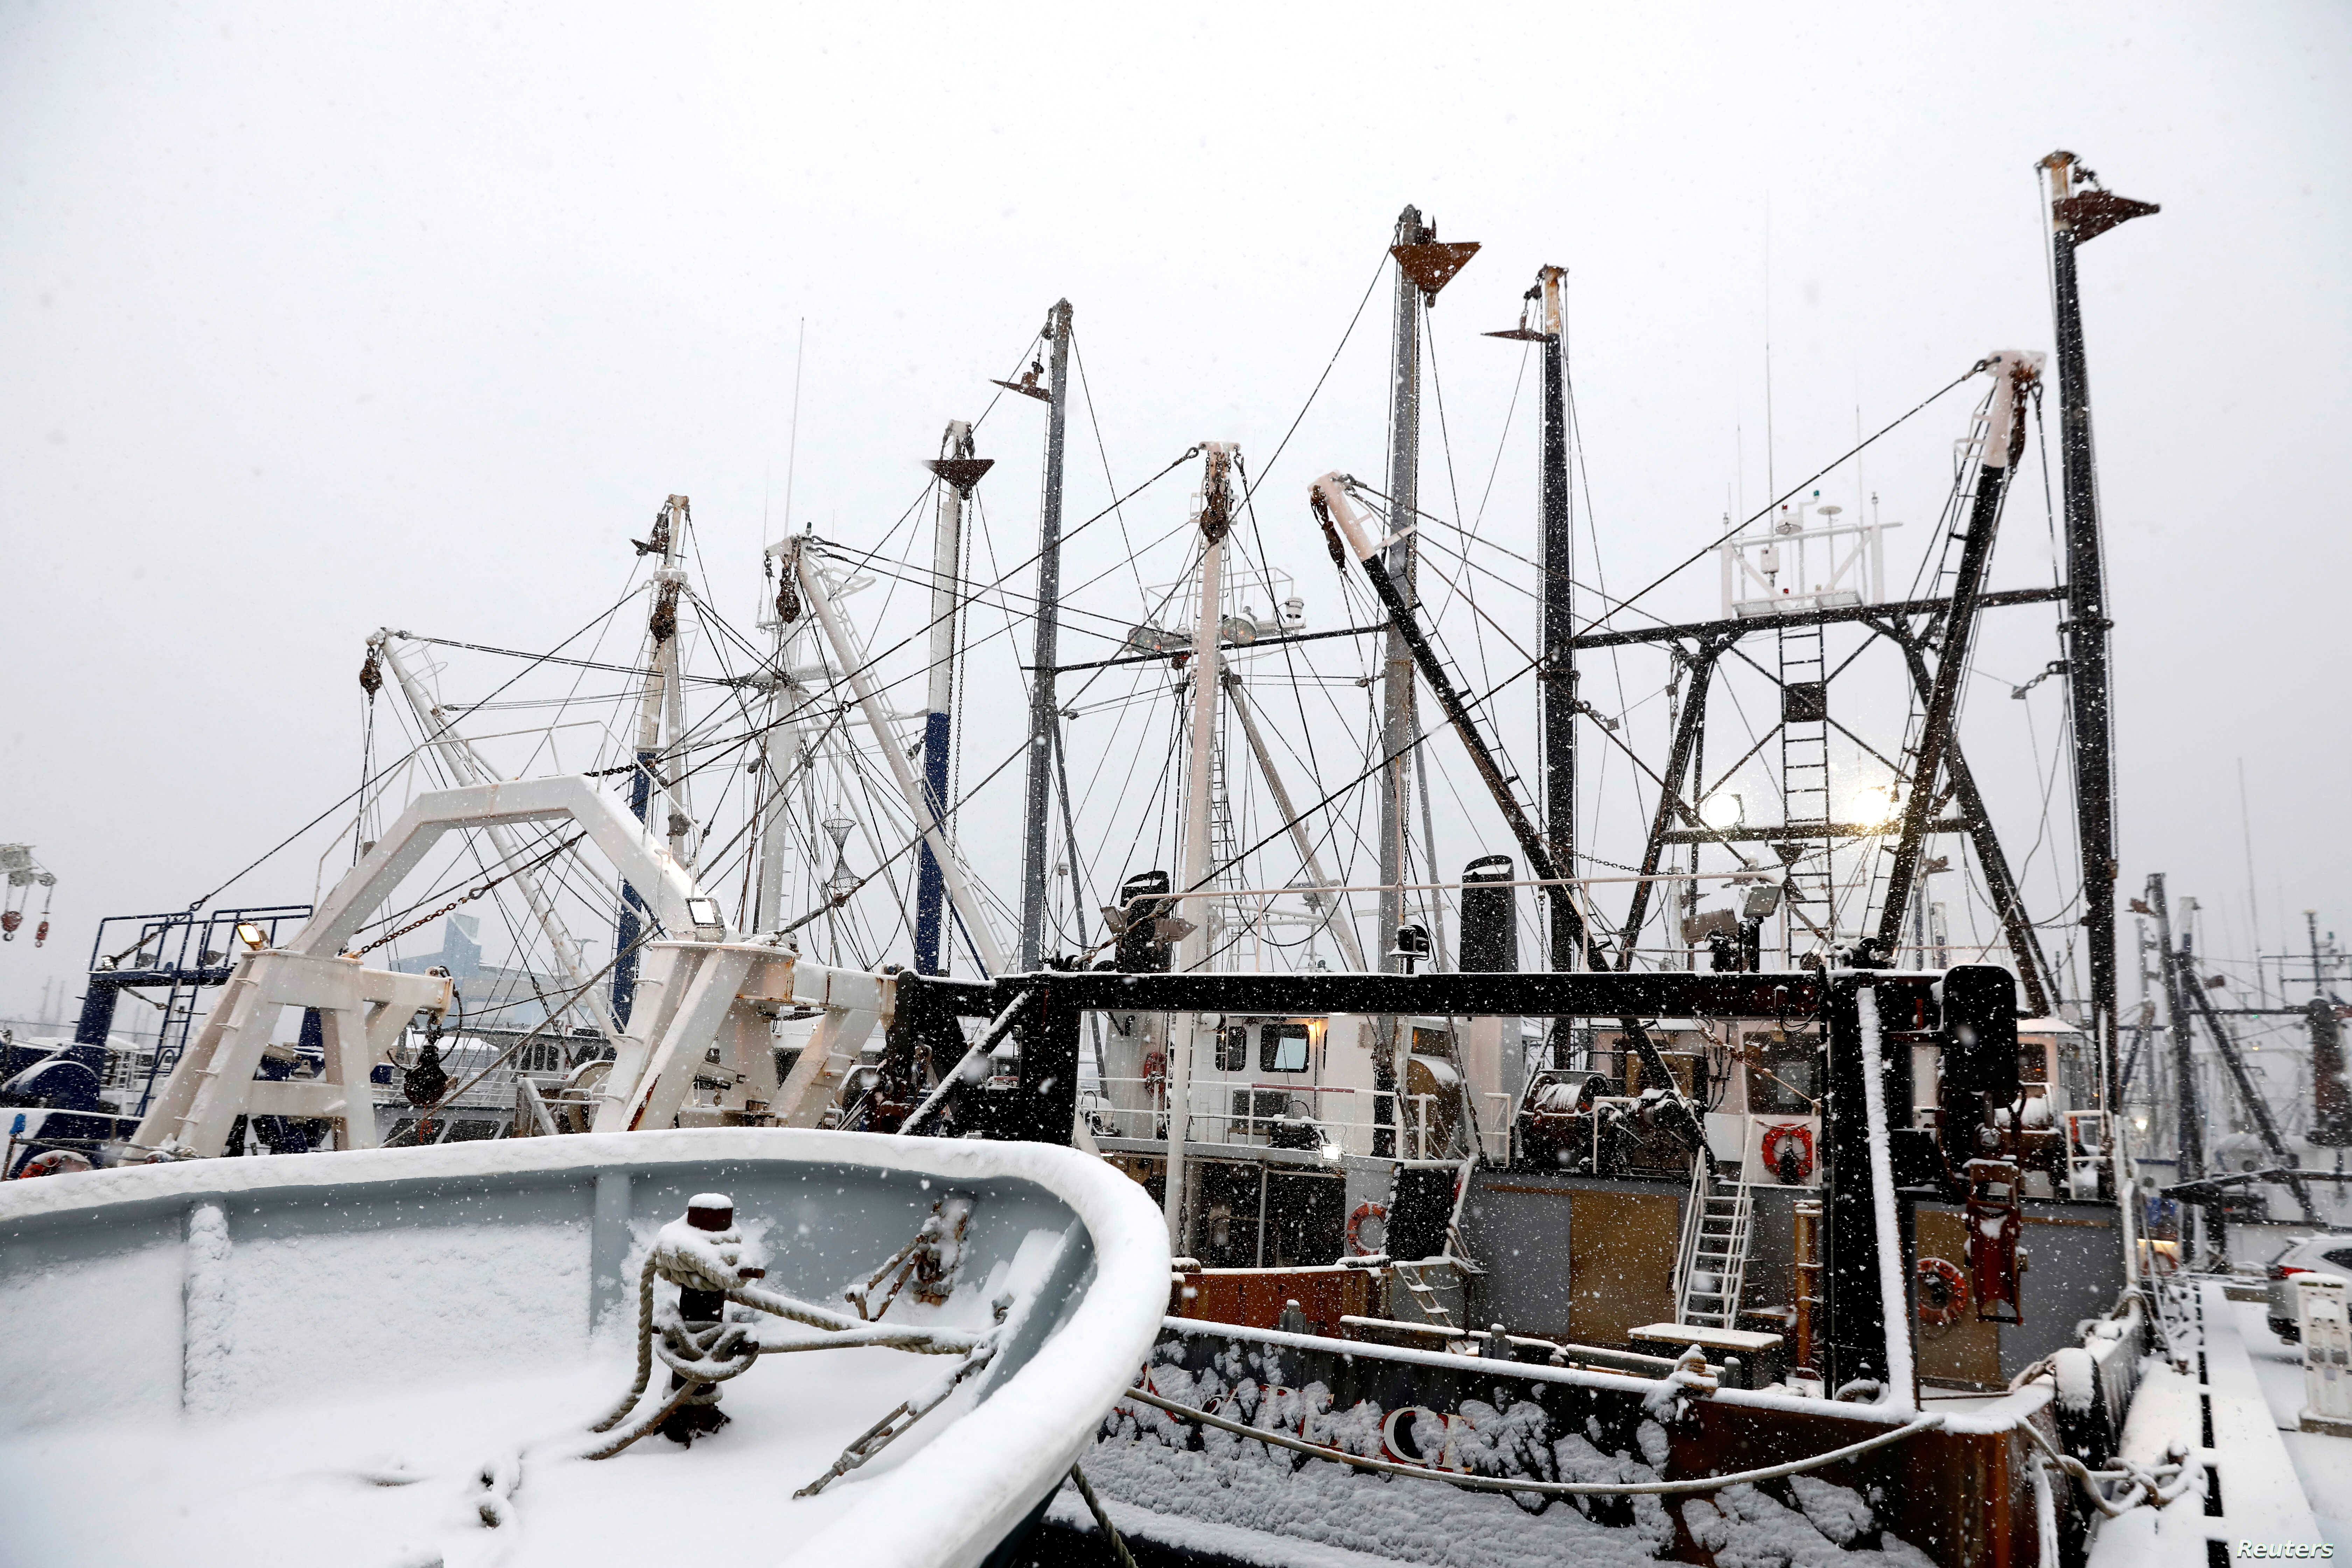 Snow-covered fishing boats are seen in New Bedford, Massachusetts, Dec. 14, 2017.